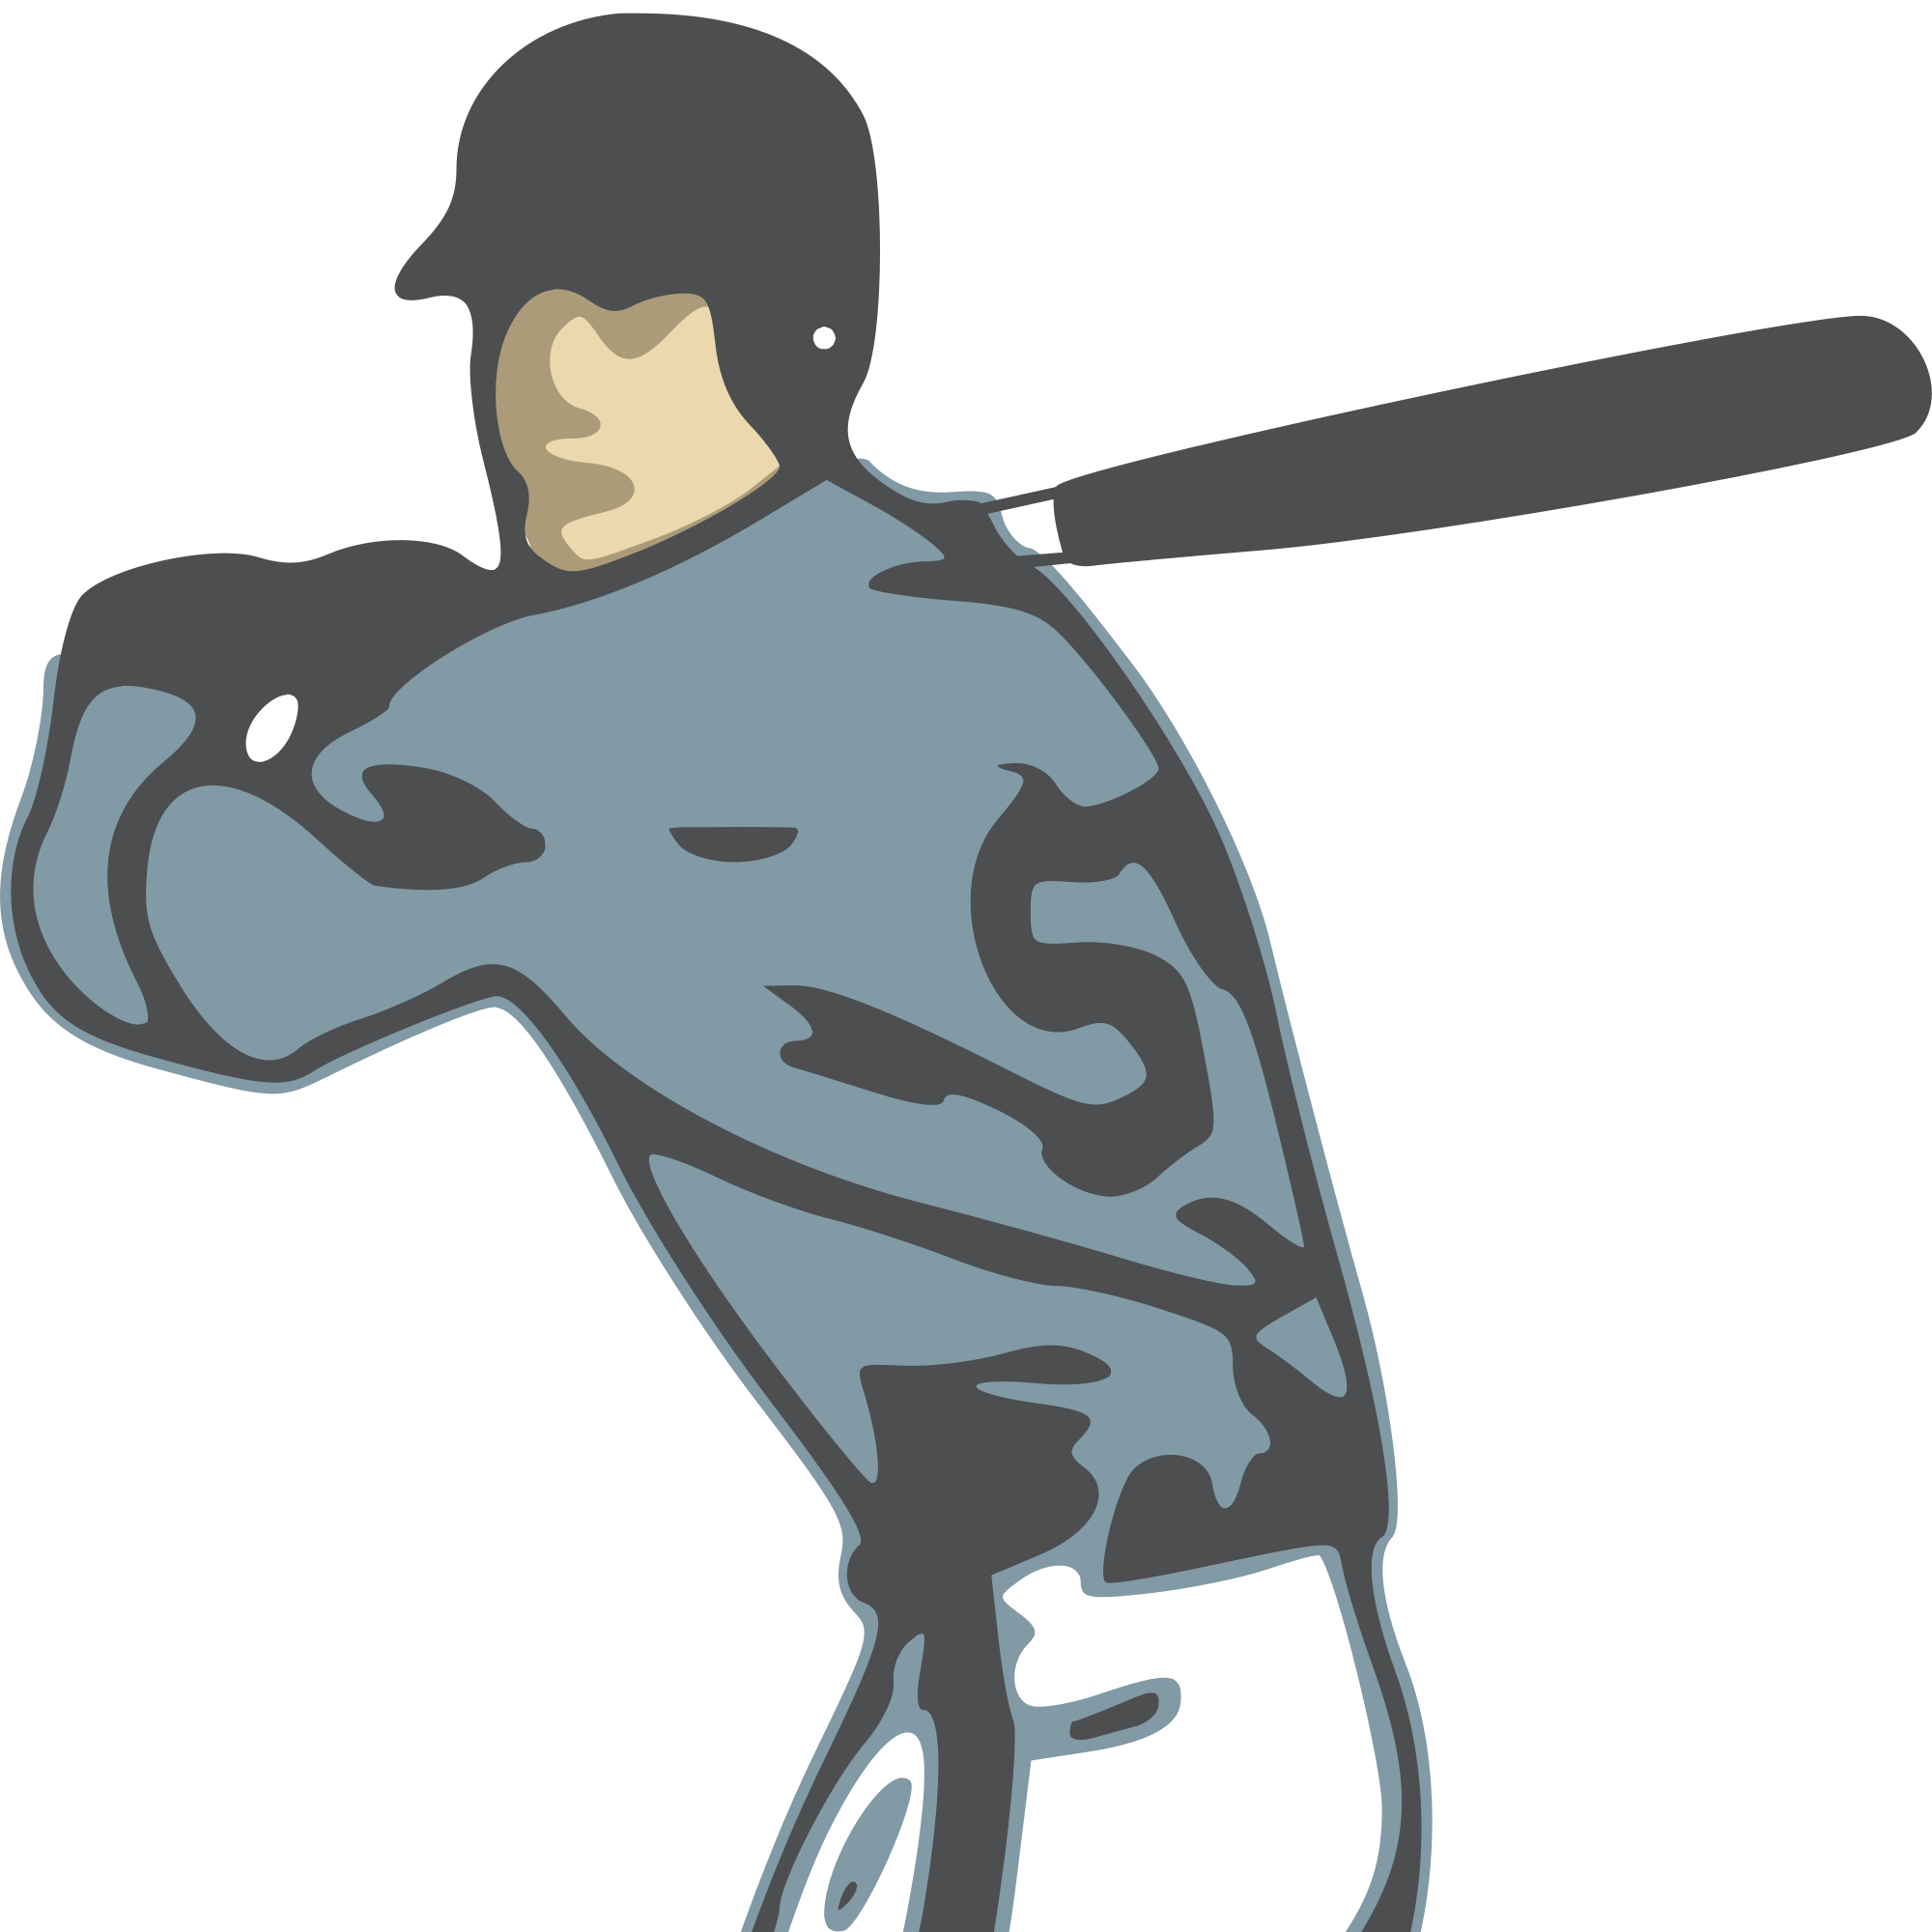 Baseball bat and ball clipart banner free download Baseball Batter Clipart at GetDrawings.com | Free for personal use ... banner free download